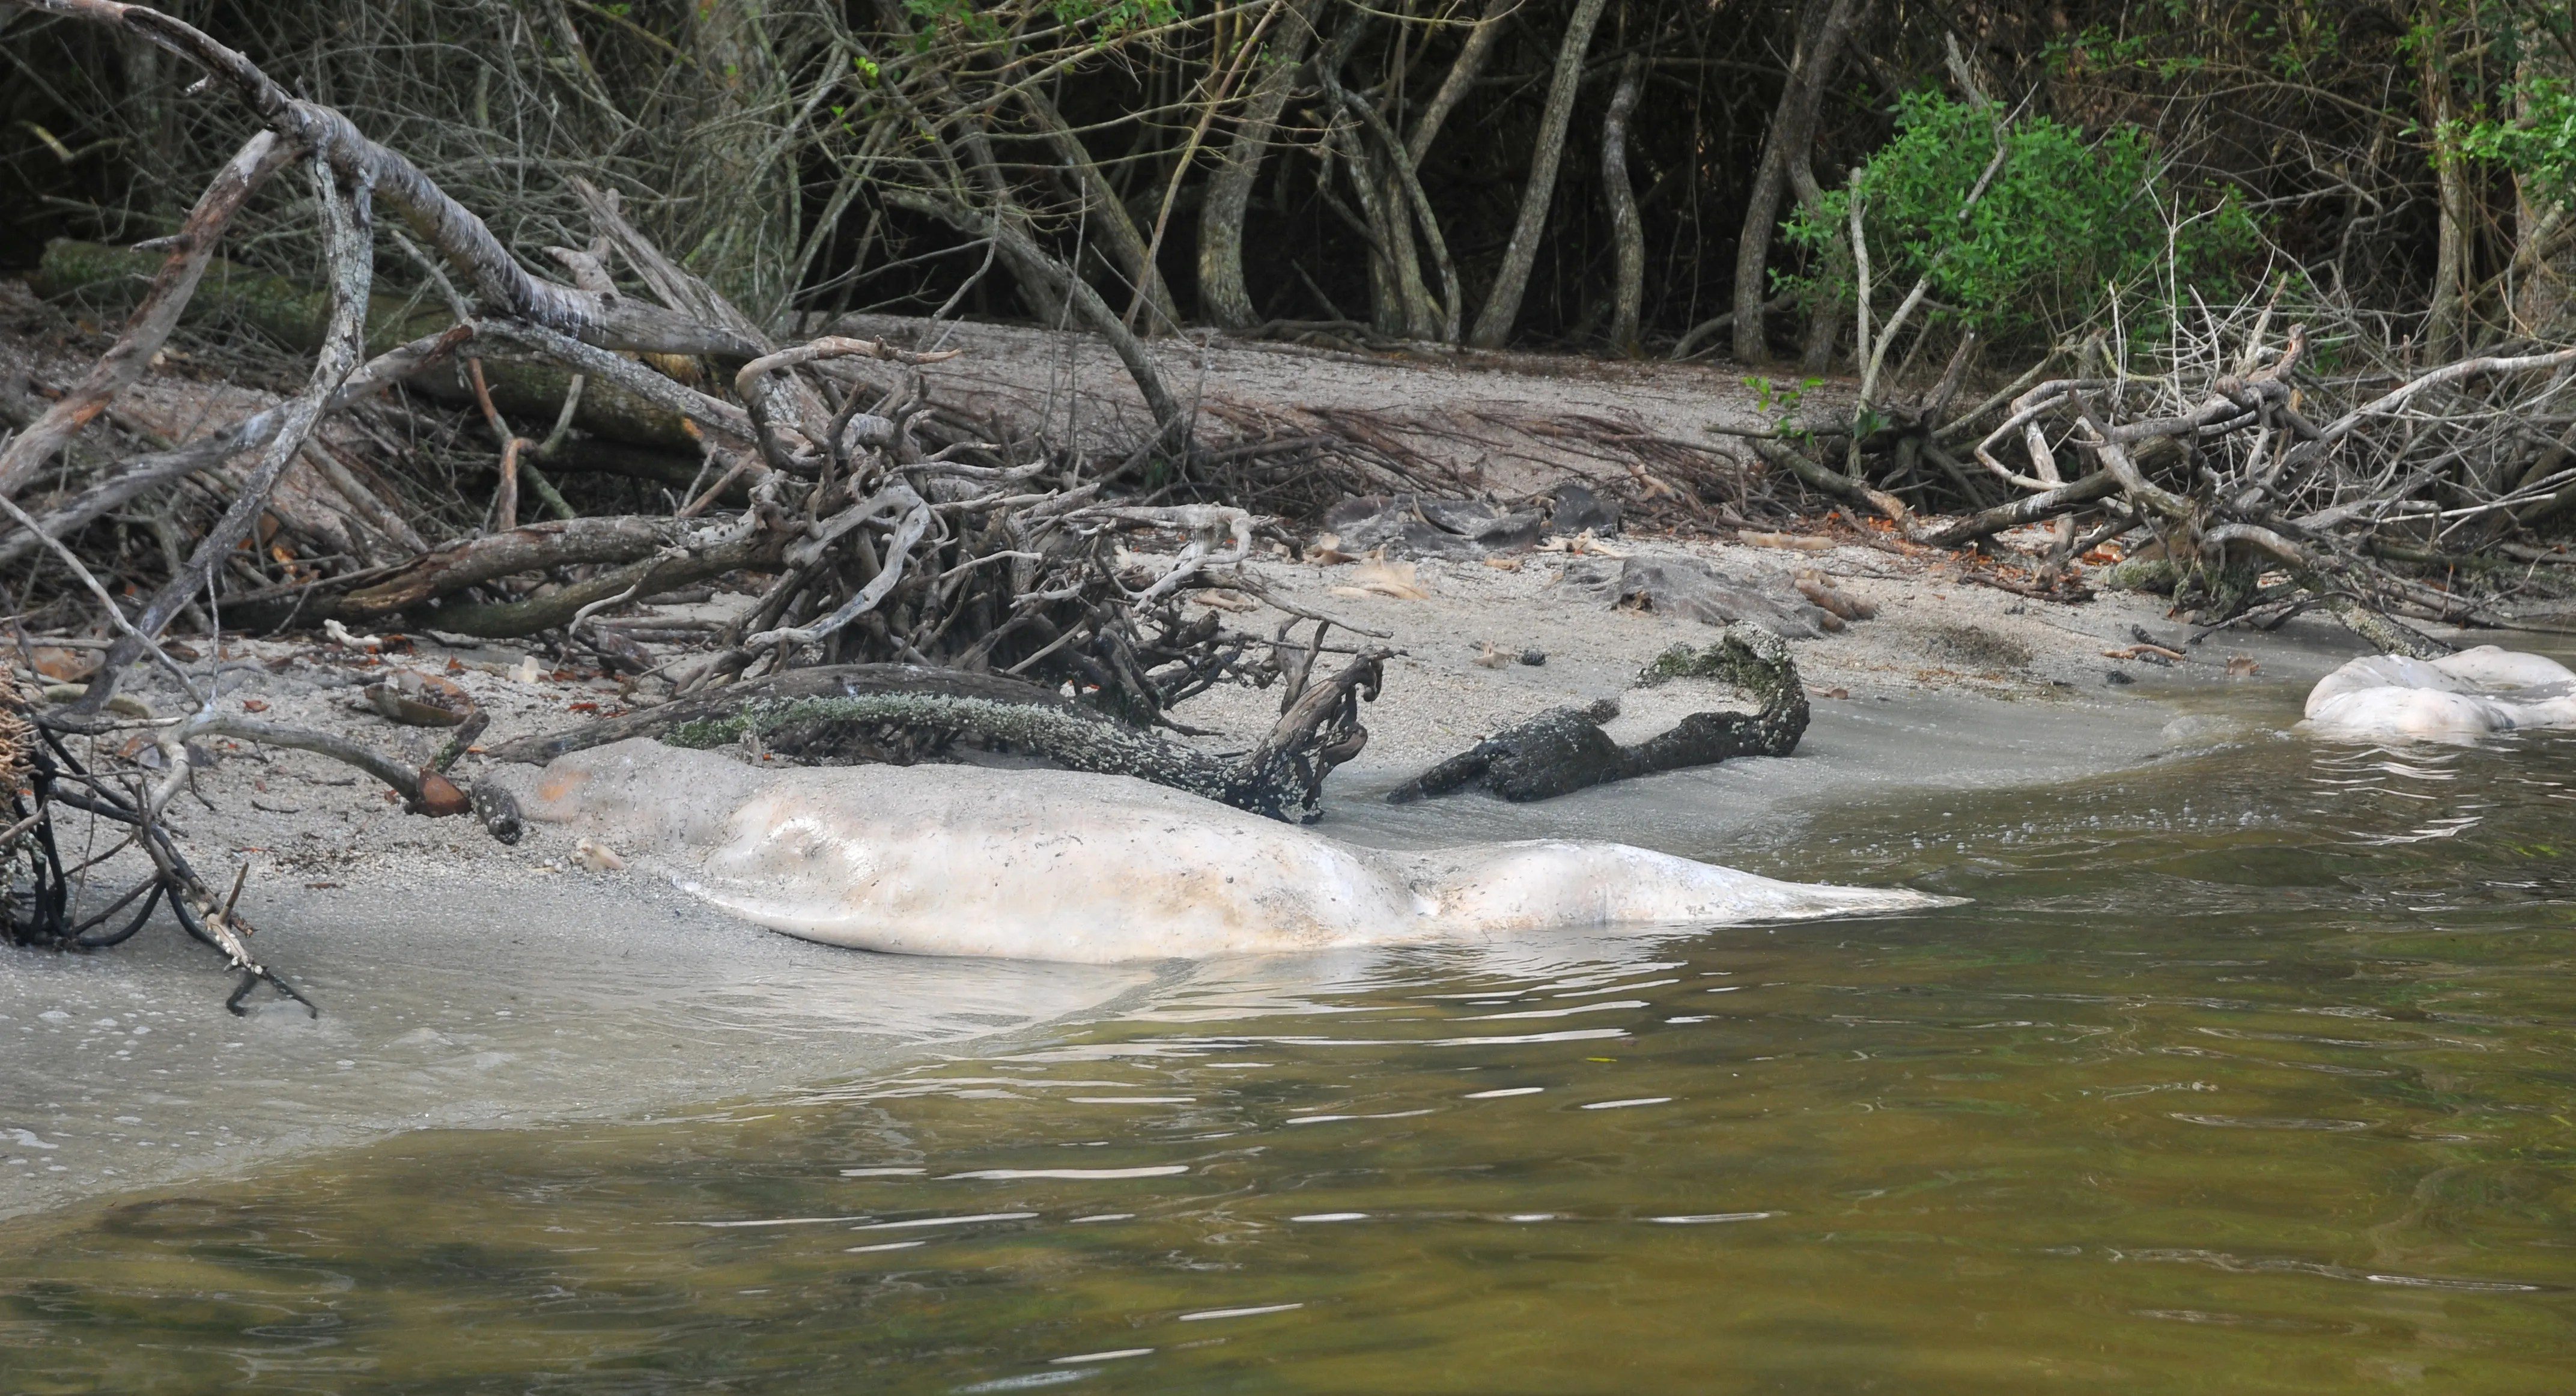 Manatee bones scattered along the shore of the Indian River. Wildlife officials have dragged more than 30 dead manatees to an area just north of Manatee Cove in the Indian River. The manatees have a low body weight and officials believe they have died from a lack of sea grass.